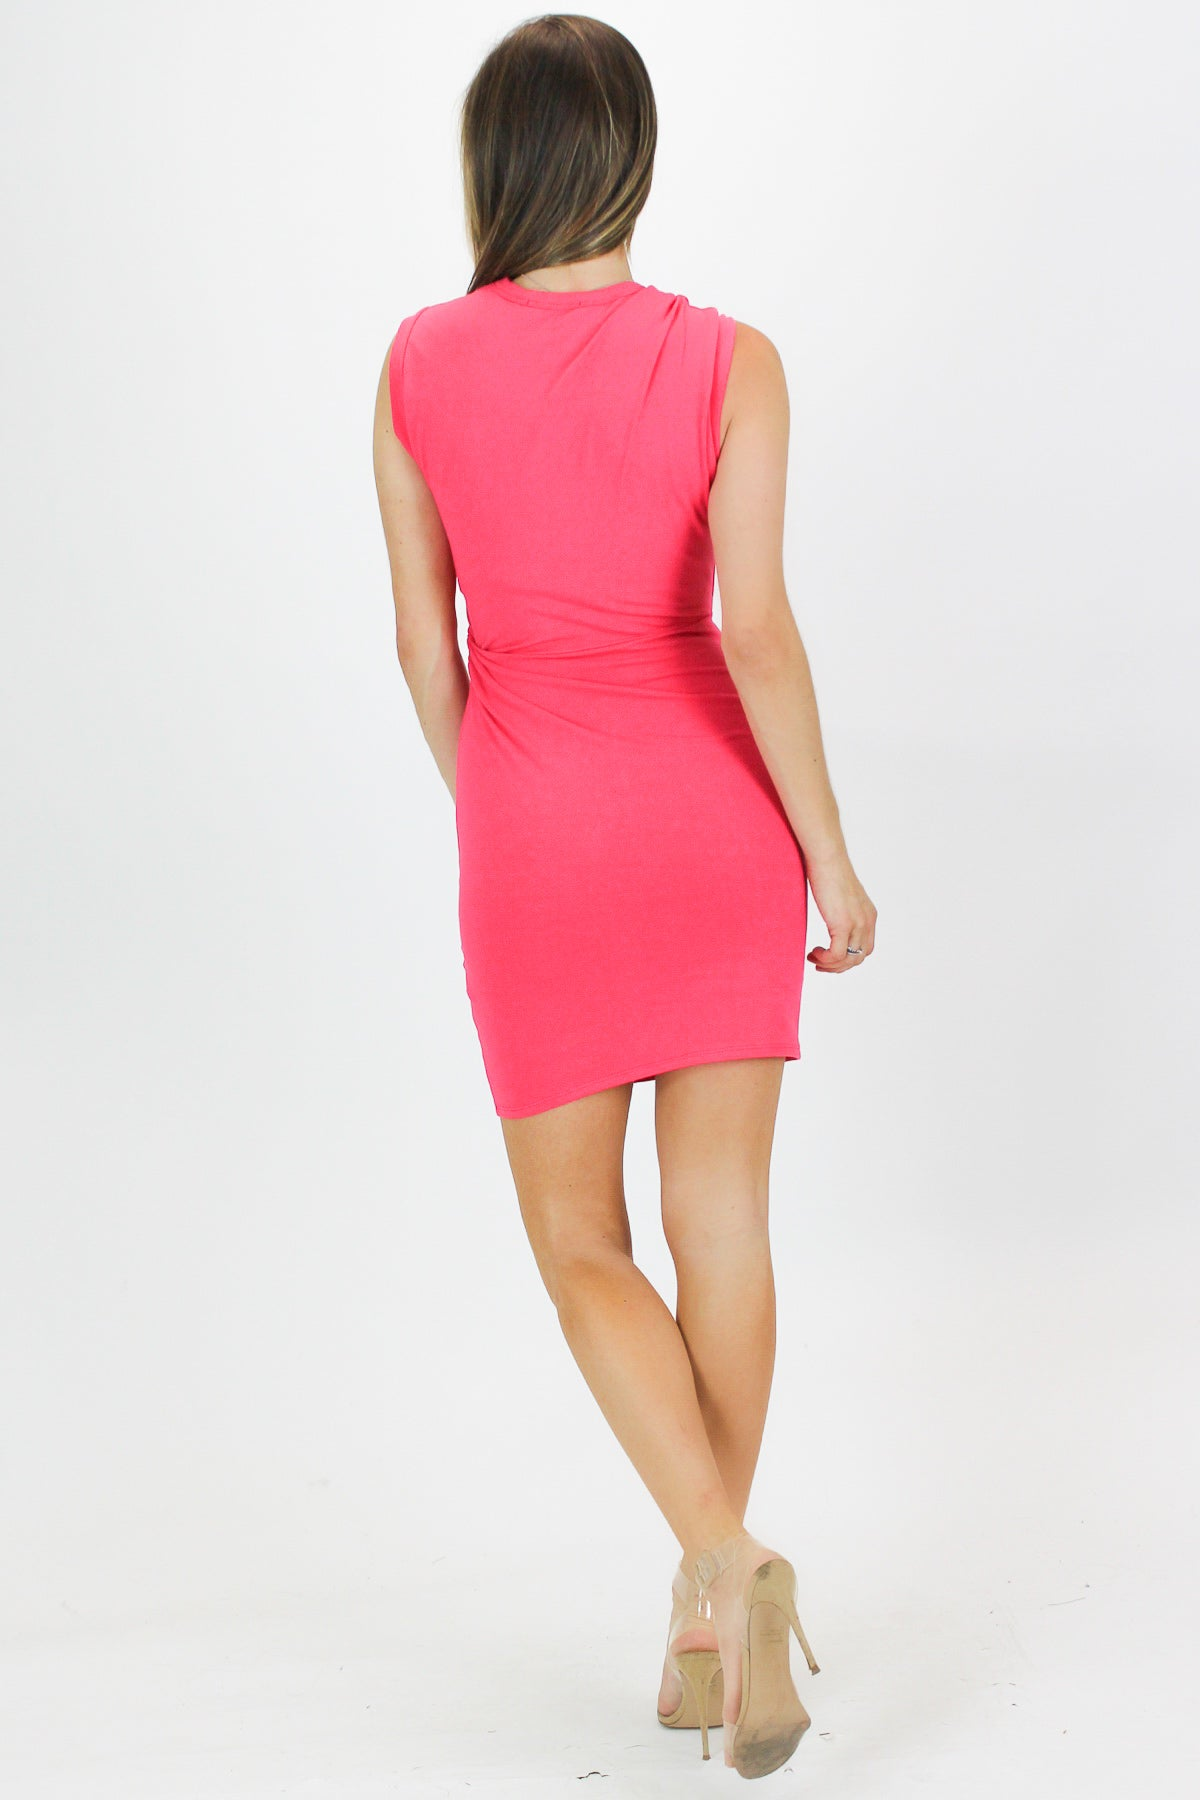 COMFY CUT OUT MINI IN CORAL